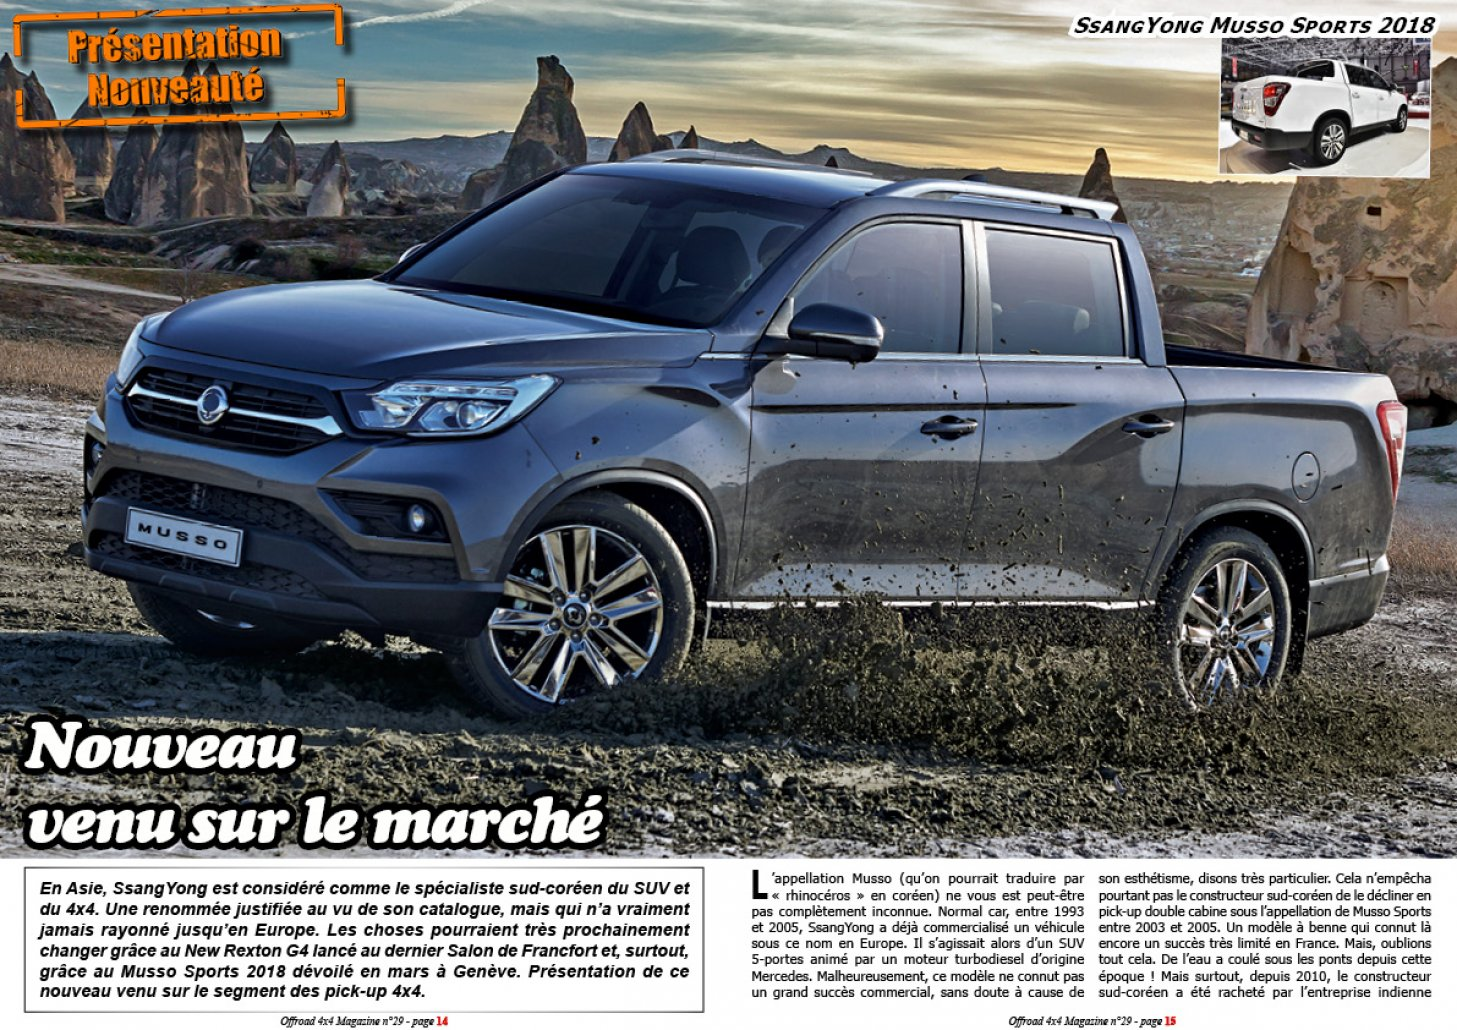 Le SsangYong Musso Sports 2018